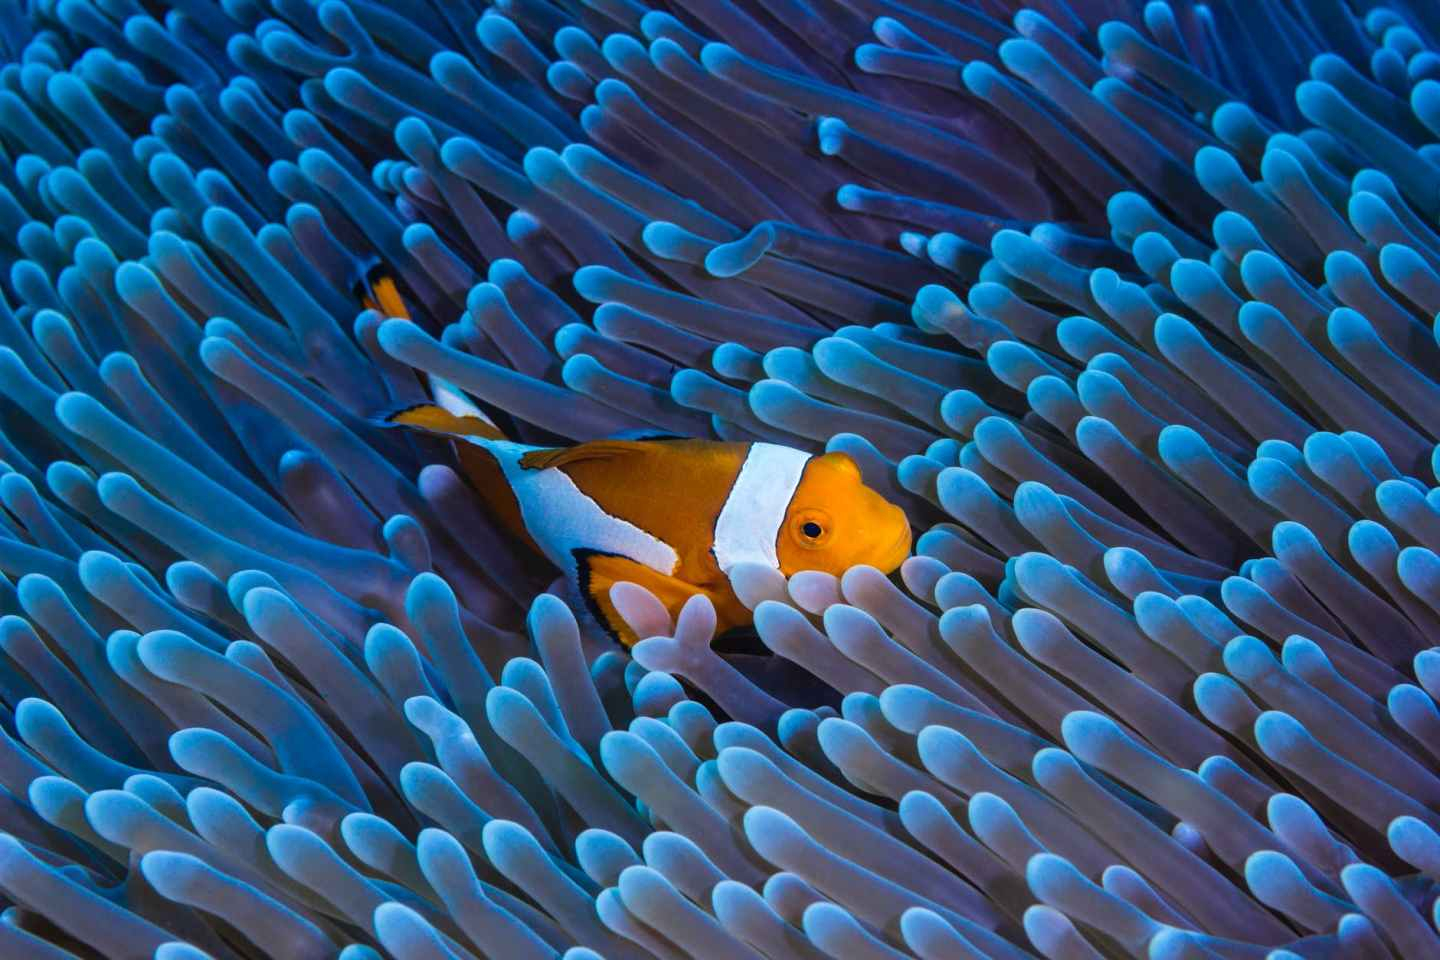 bright fish swimming among coral reefs in water